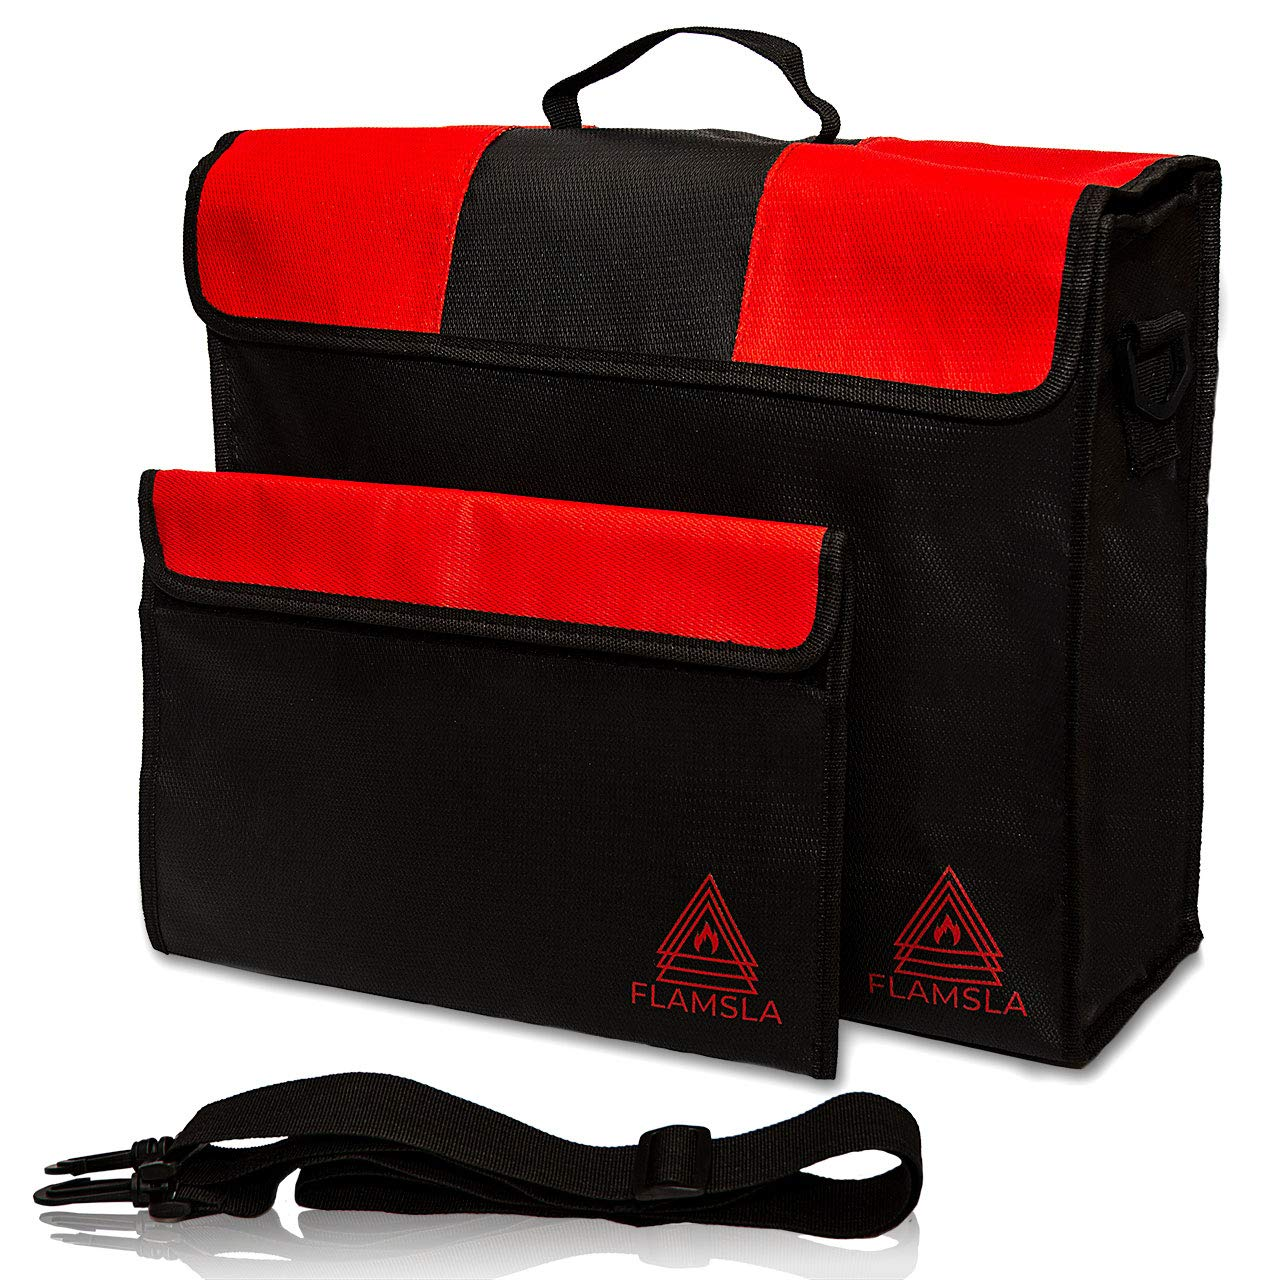 Flamsla Fireproof Safe Bags - Best 2pc Set of XL LARGE Fireproof Document Bags (15''x12''x5'')+ Small 13'' Fireproof Envelope- Fire & Water Resistant Case to protect Money, Files,Gadget, Jewelry,Valuables